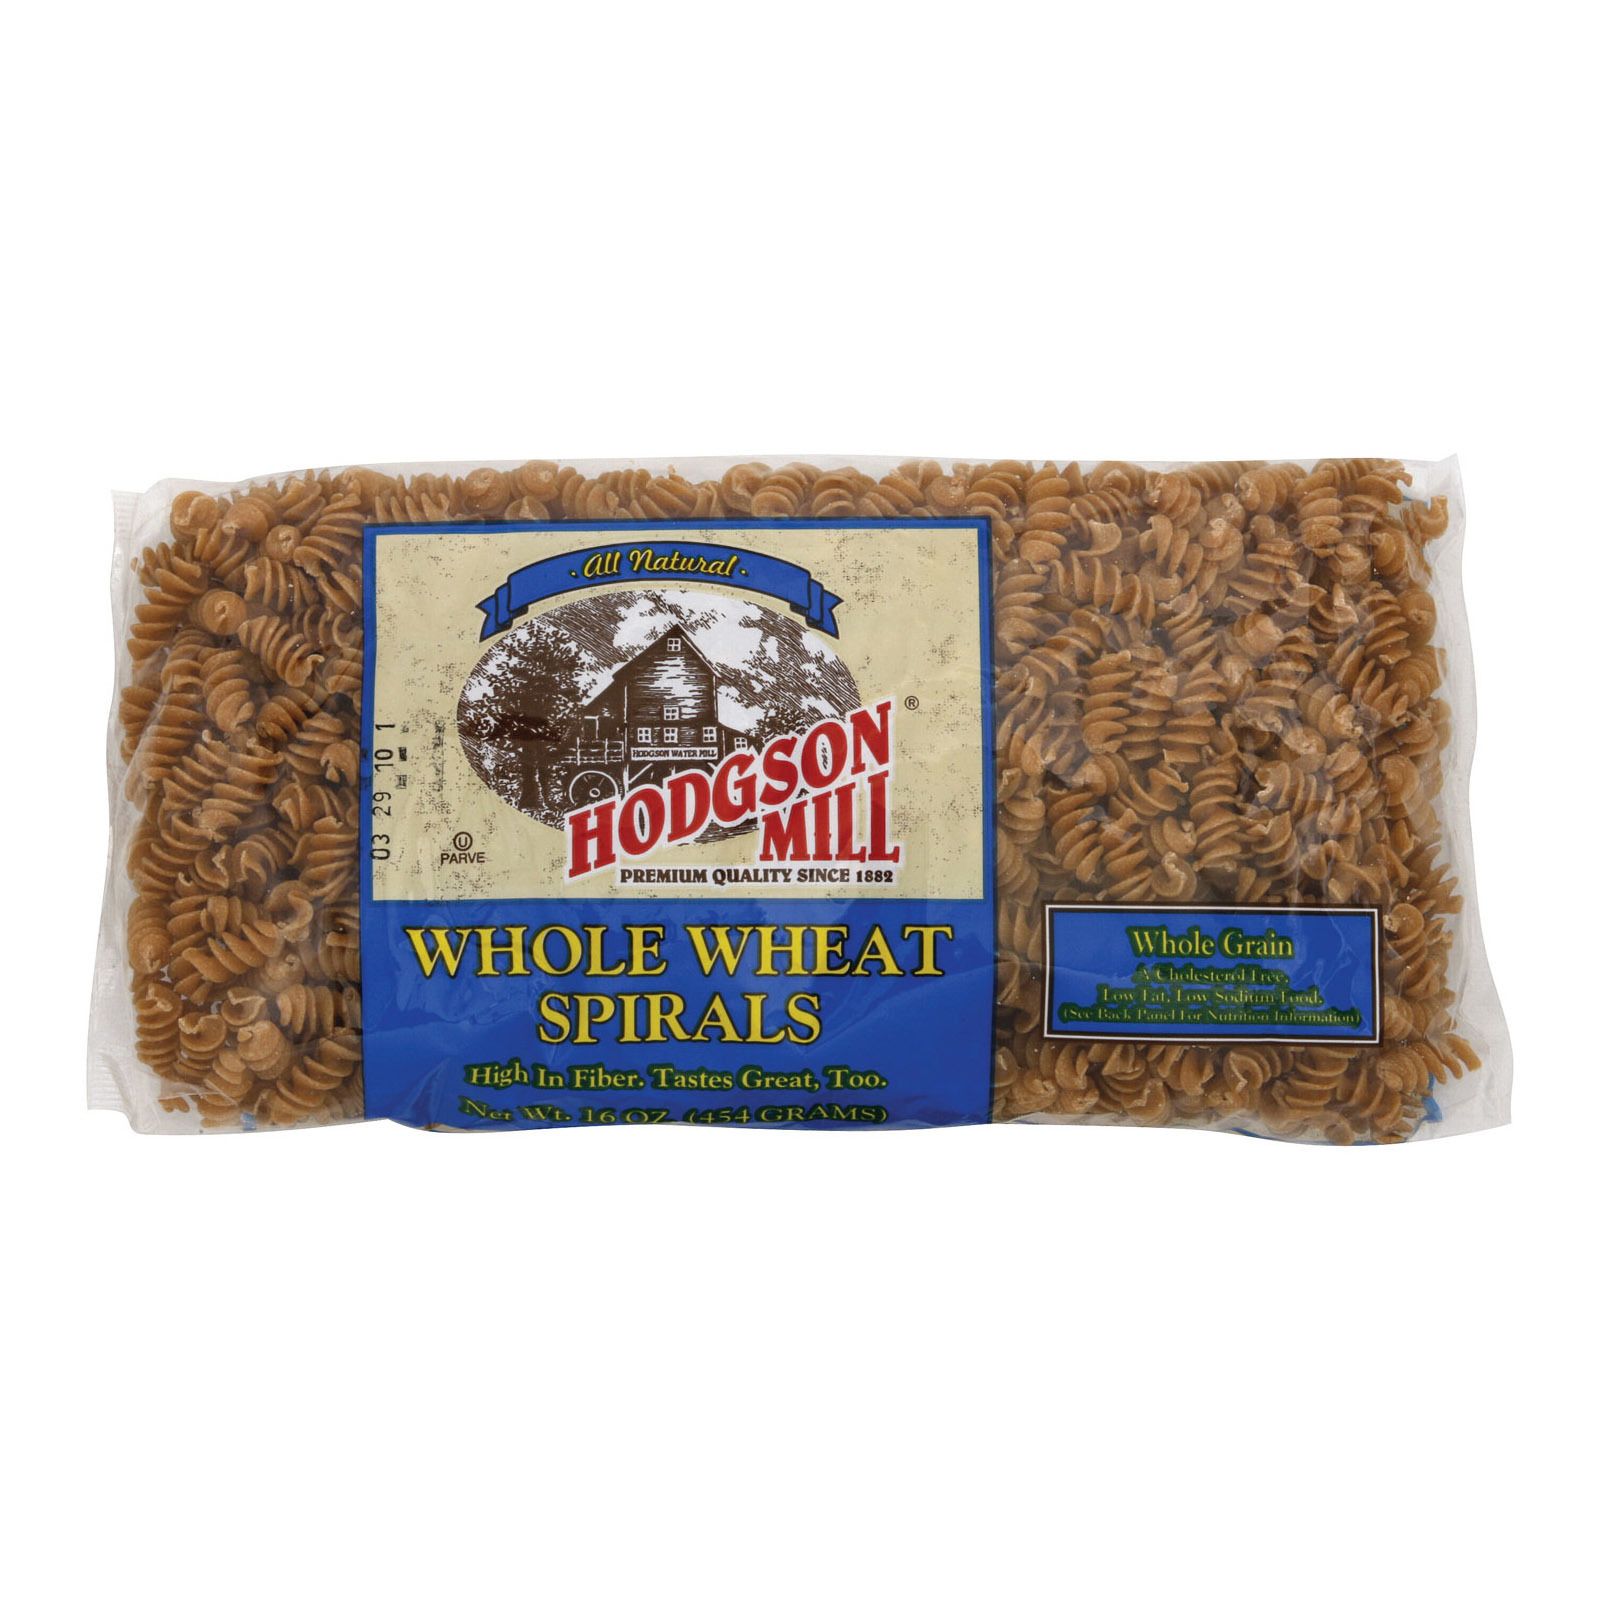 Hodgson Mills Spirals - Whole Wheat - Case of 12 - 16 oz